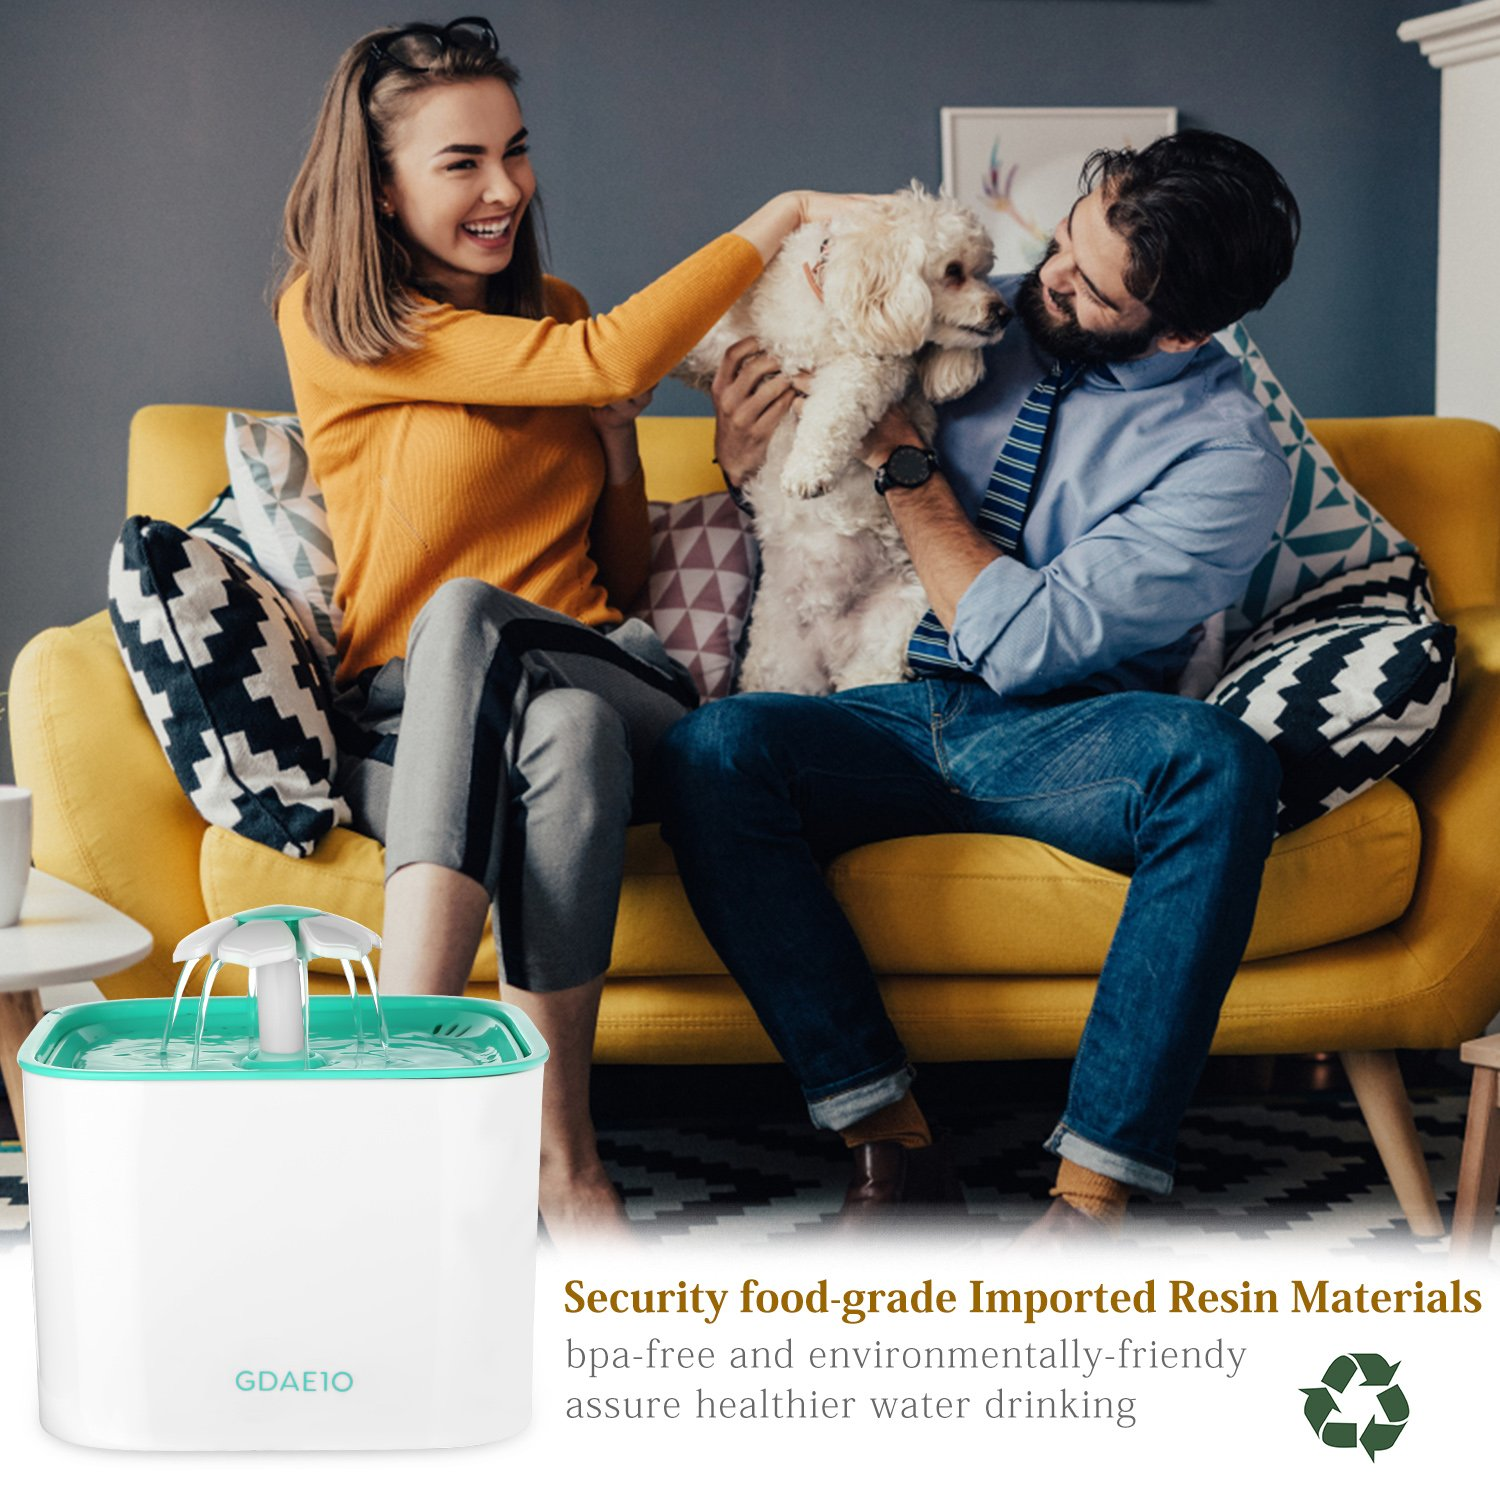 GDAE10 Pet Fountain, Cat Water Dispenser, Automatic Pet Drinking Fountain 2L Super Quiet Flower Circulating Silent Pump with 2 Replacement Filters for Cats, Dogs, Birds and Small Animals by GDAE10 (Image #6)